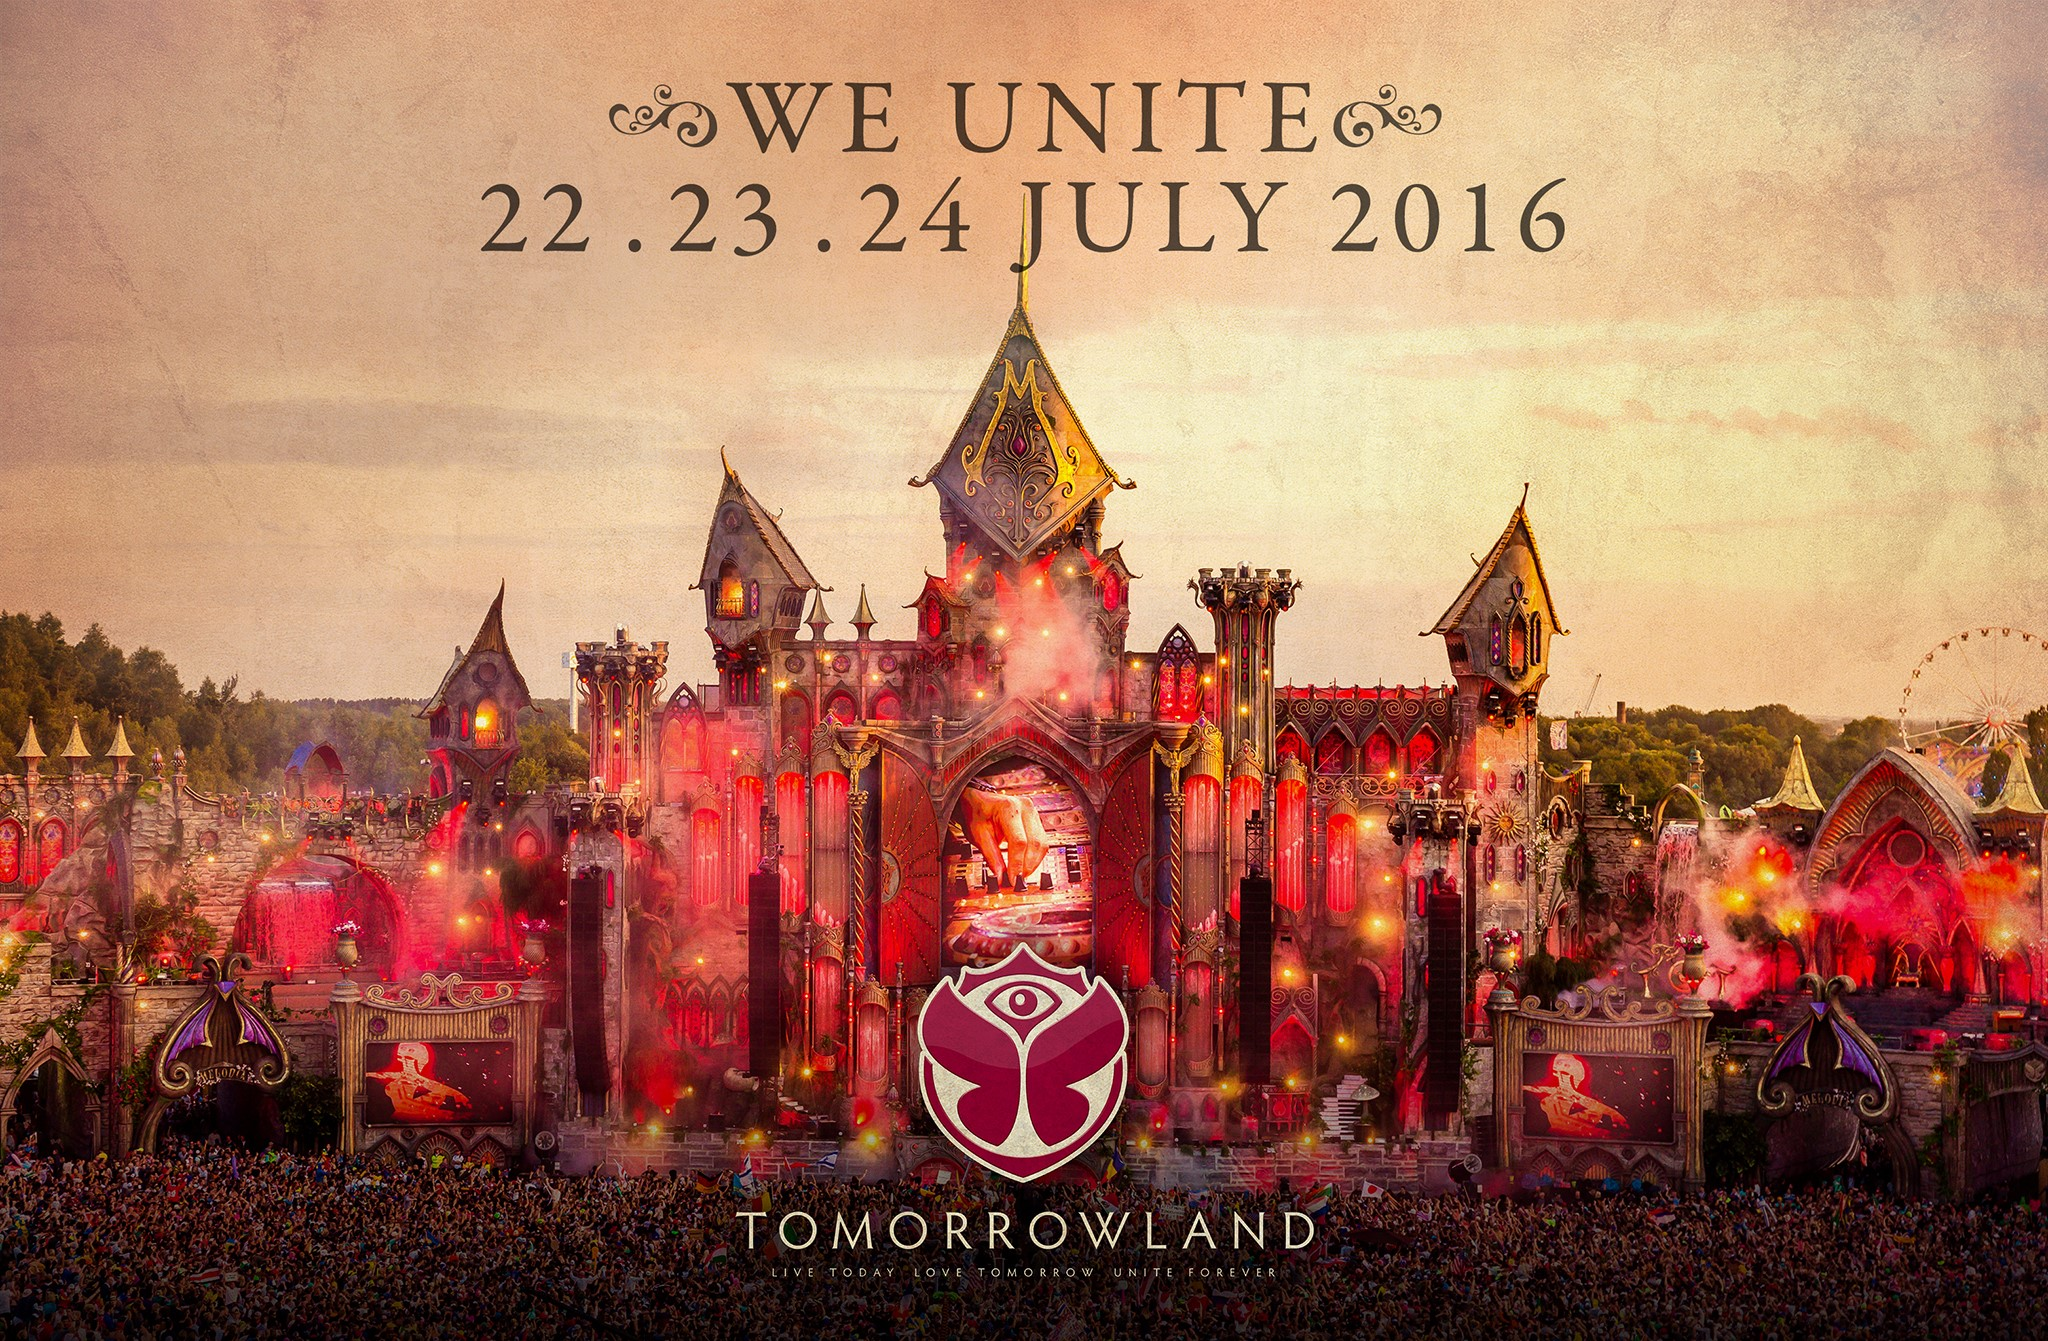 tomorrowland-2016-july-22-23-24